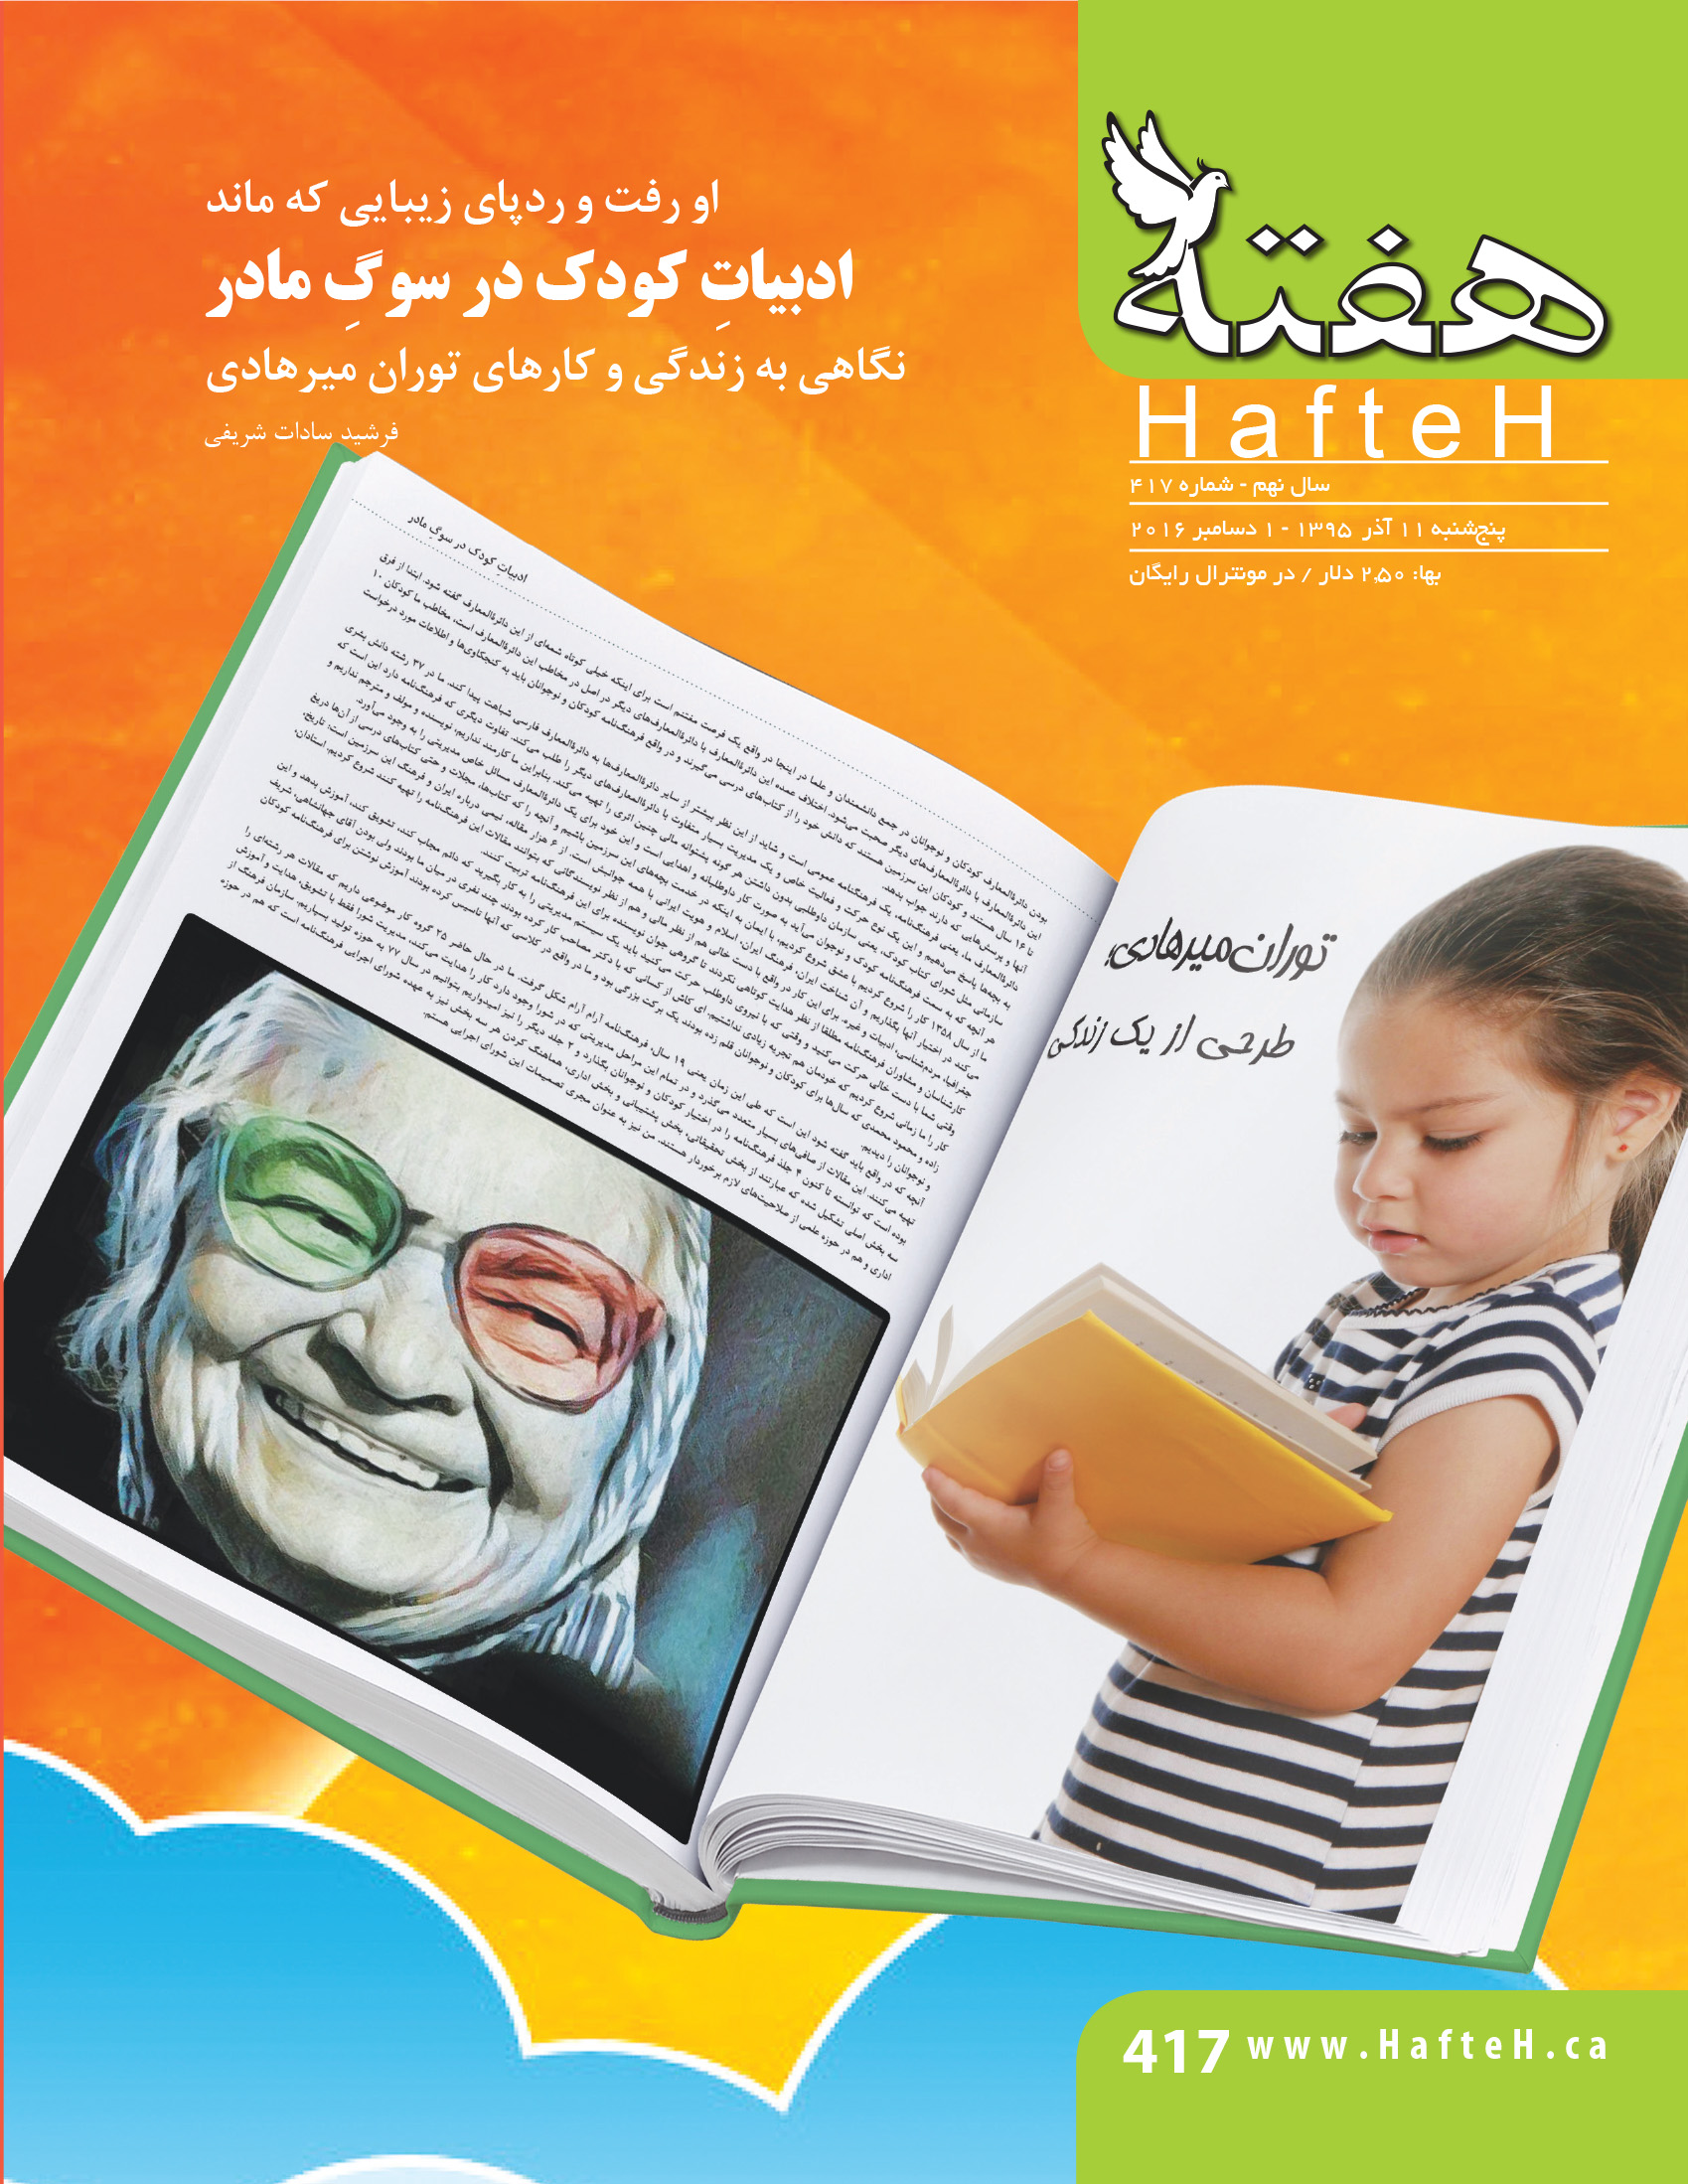 Hafteh - Issue Number: 417